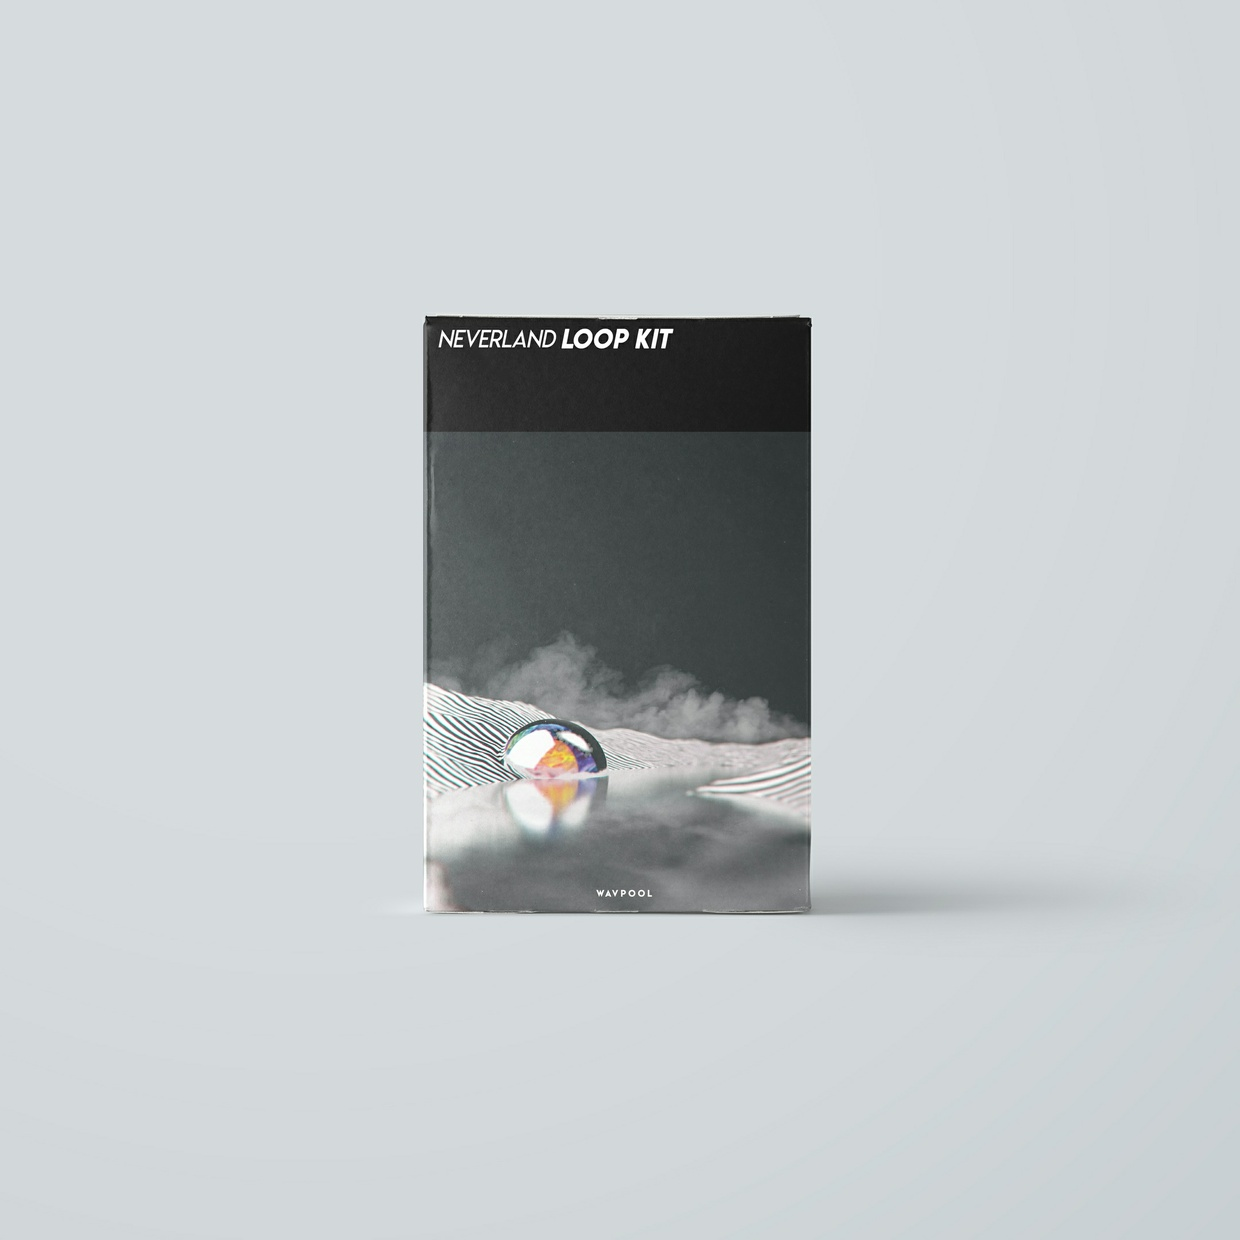 Neverland Loop Kit